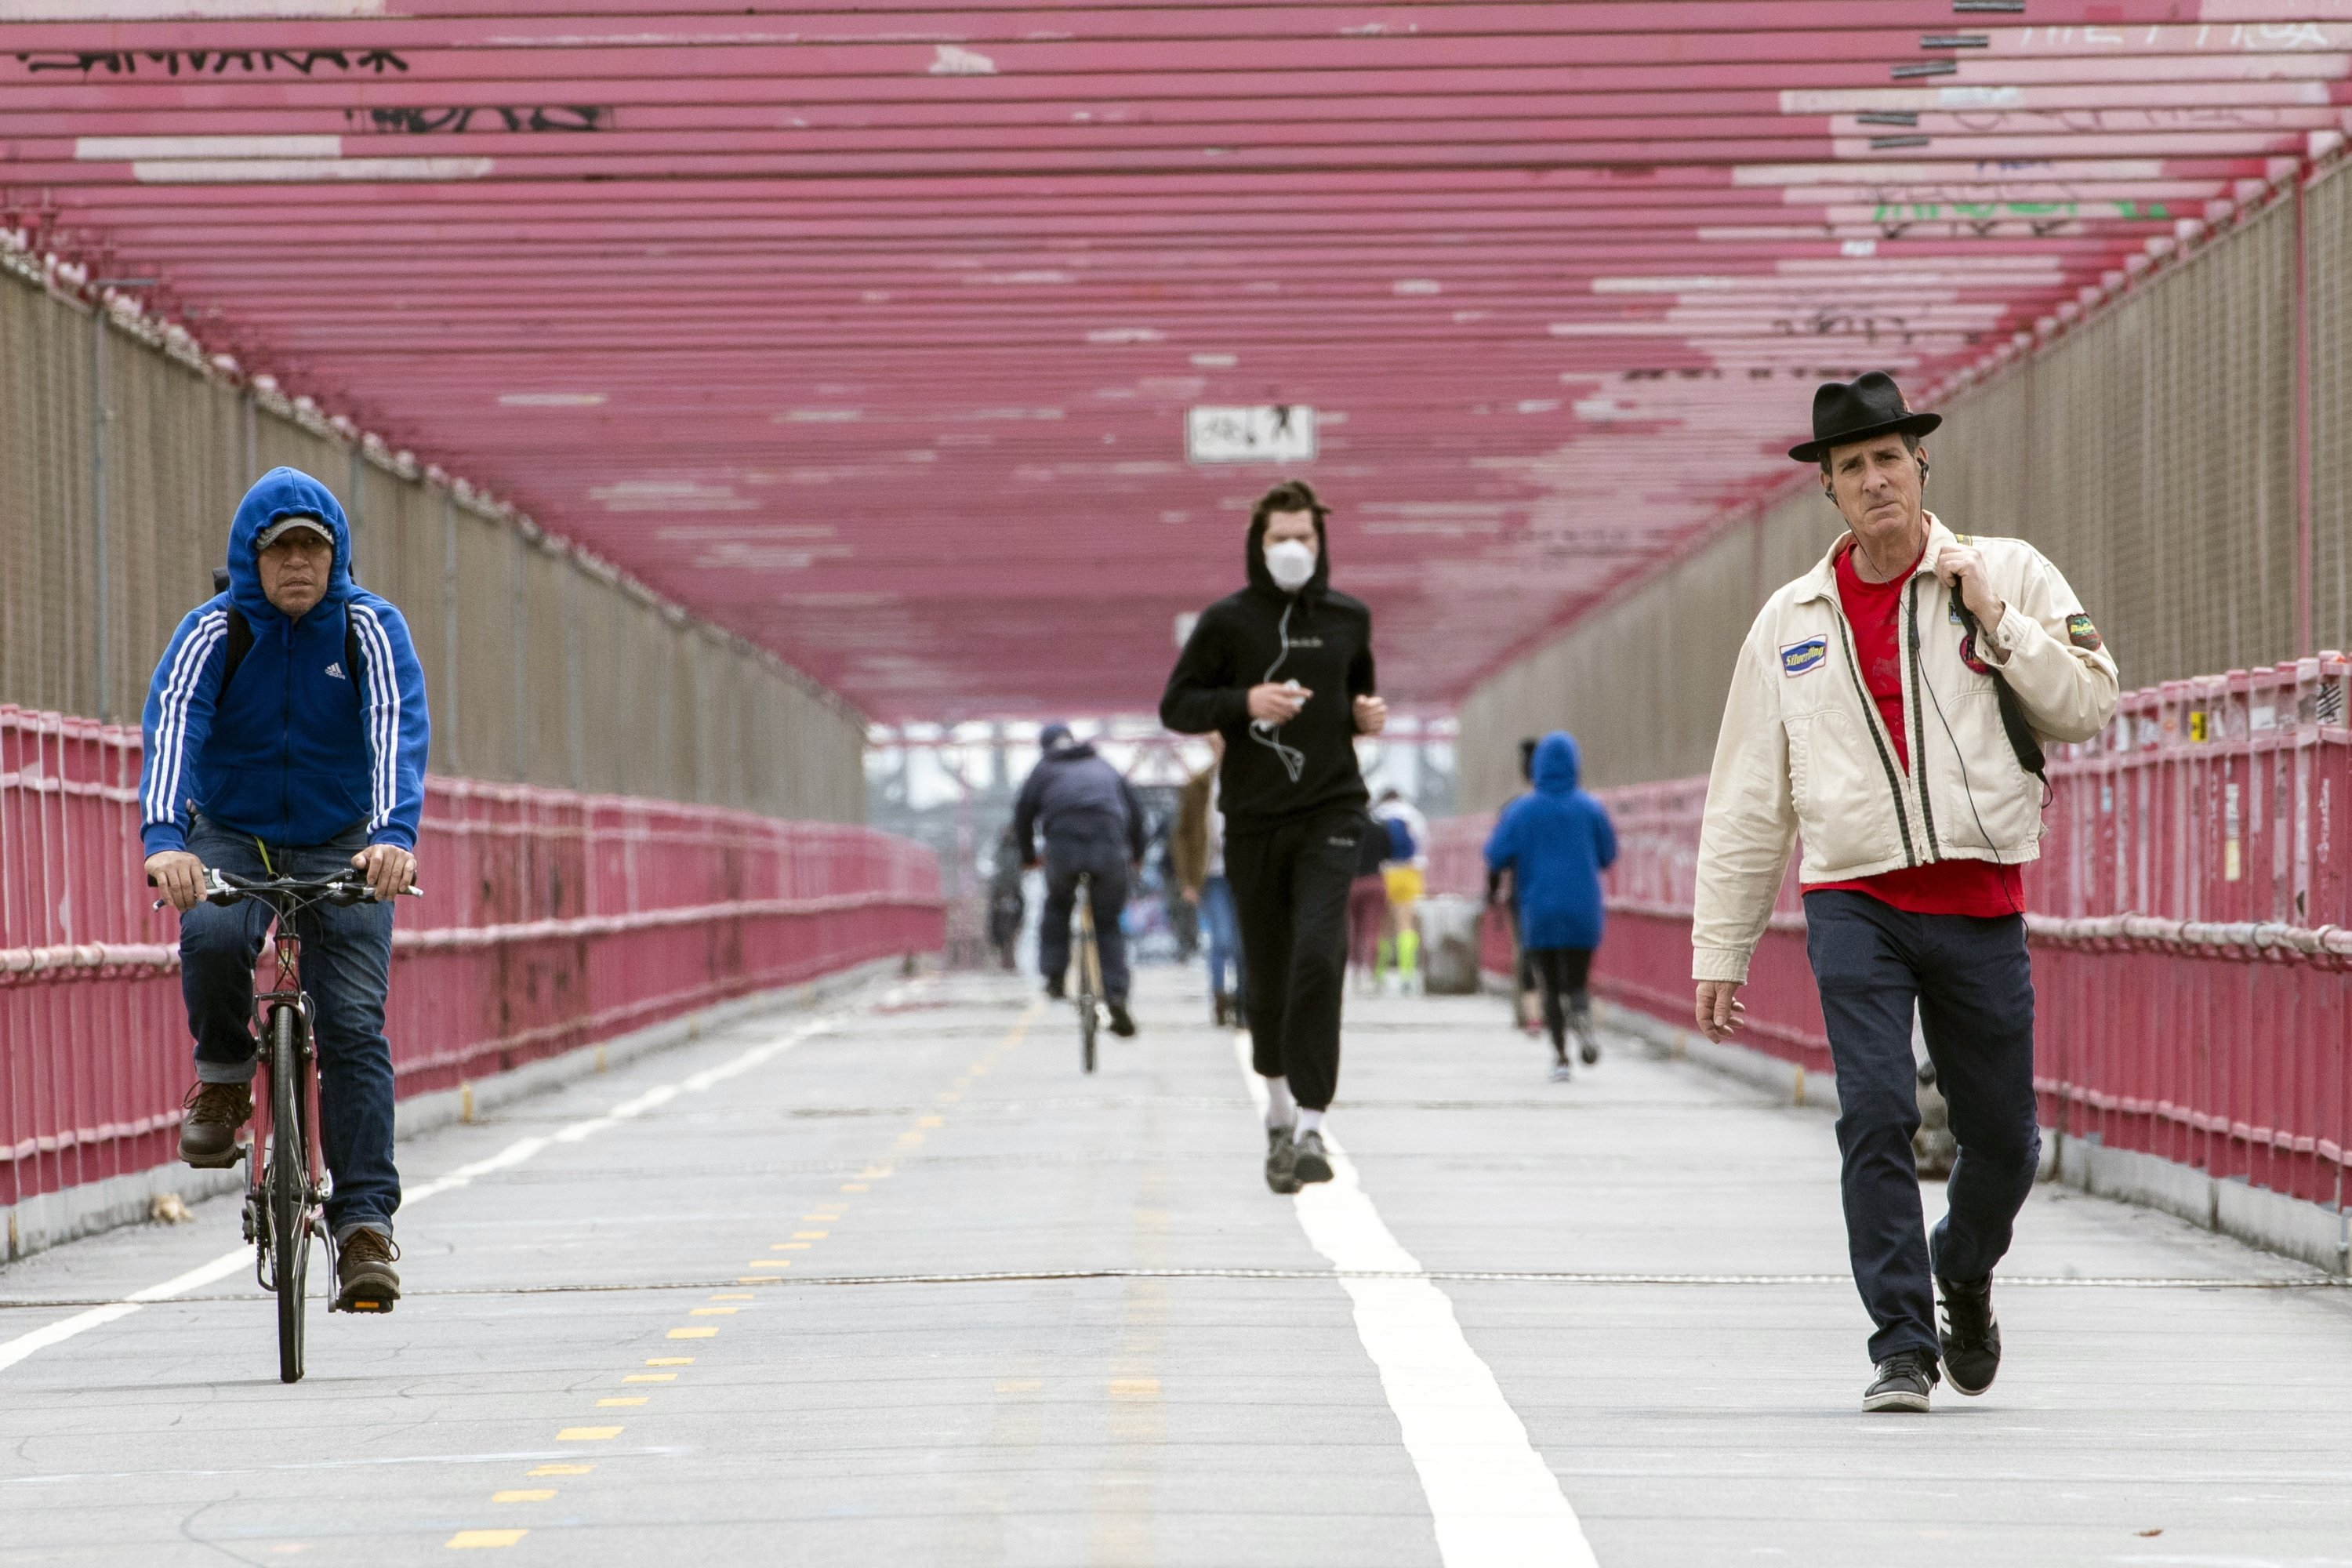 A jogger wearing a face mask runs in between a biker and a pedestrian not wearing masks as they make their way over the Williamsburg bridge in New York City, New York, U.S., May 11, 2020. (AP Photo)